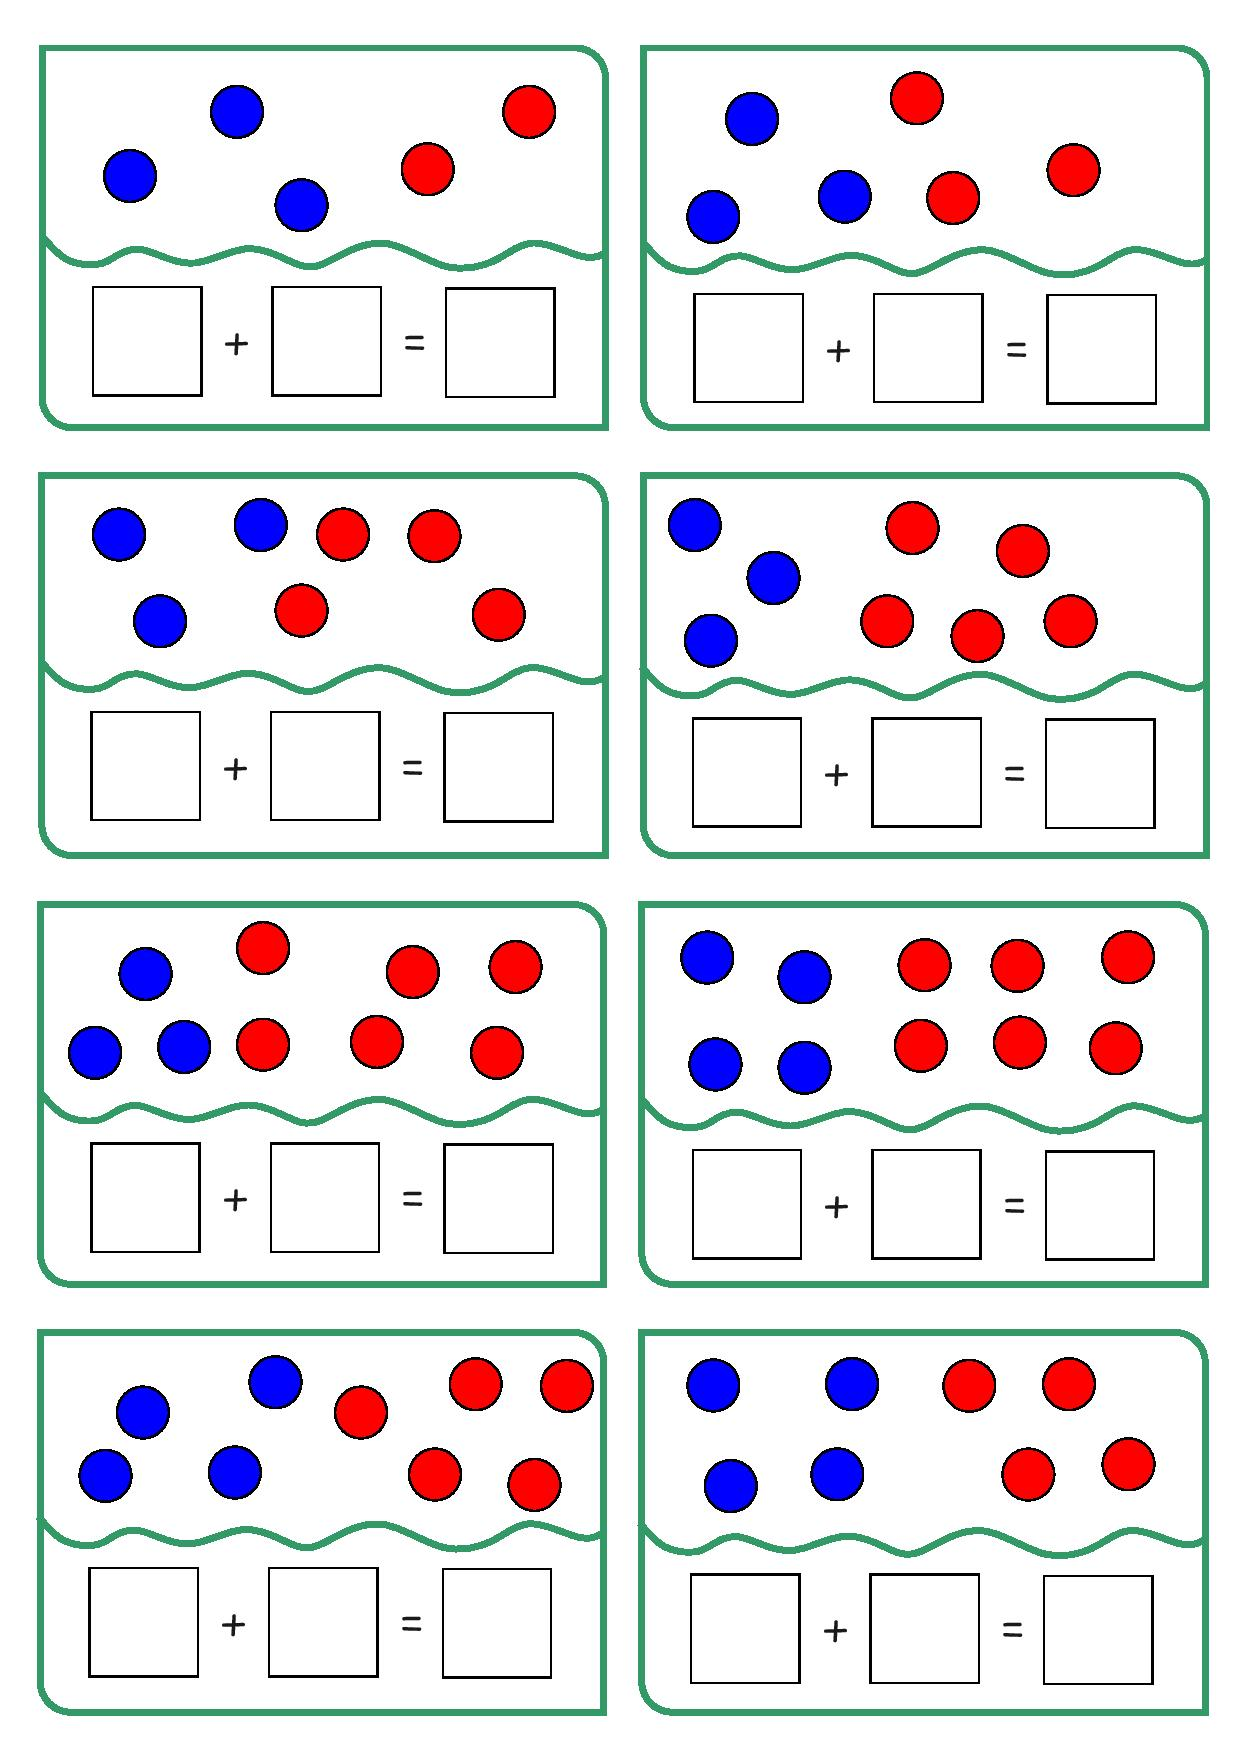 Fun Addition Sheets For Kids 3 Preschool And Homeschool